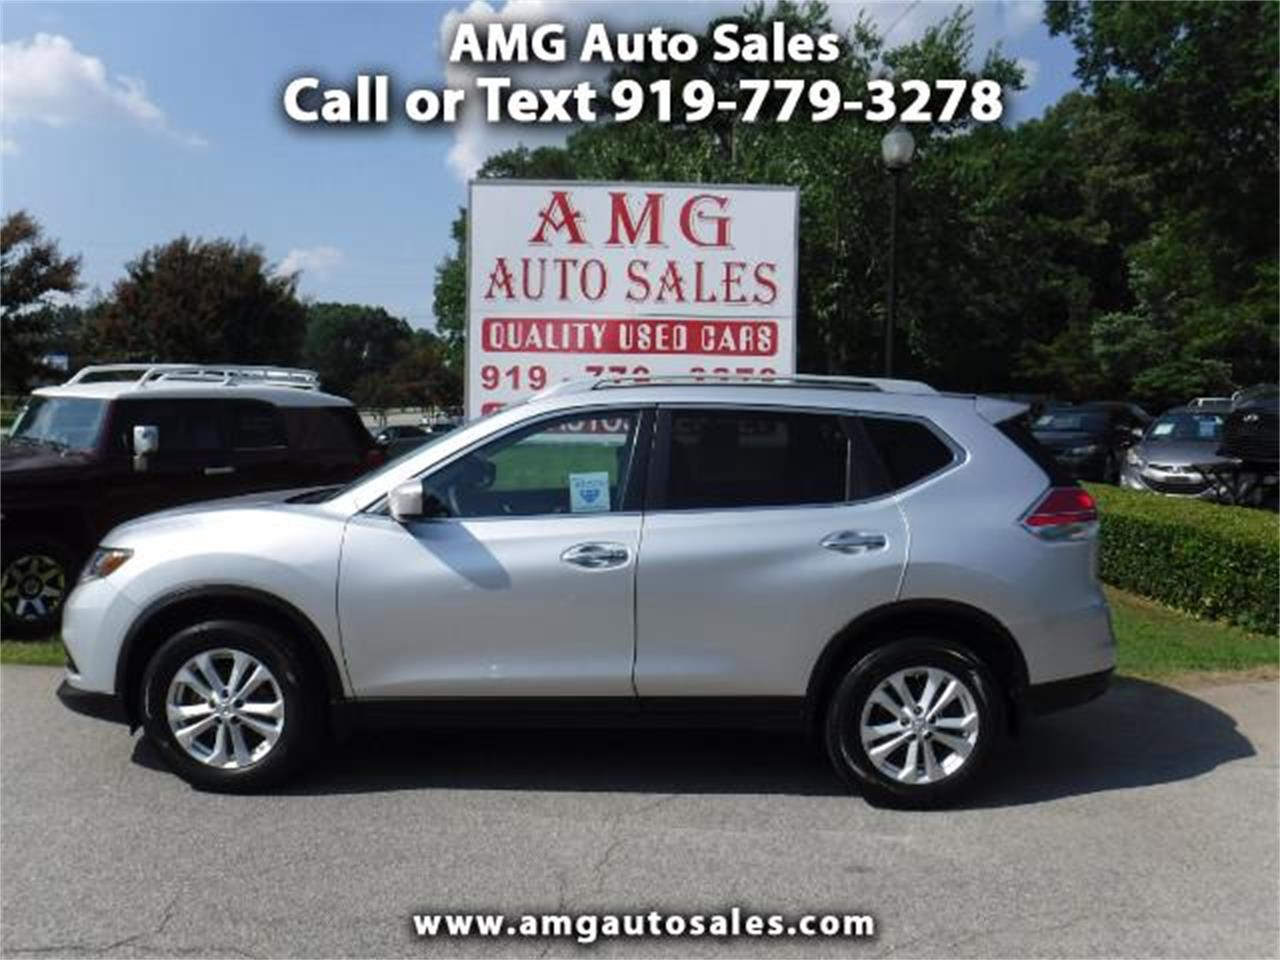 2014 Nissan Rogue For Sale >> For Sale 2014 Nissan Rogue In Raleigh North Carolina